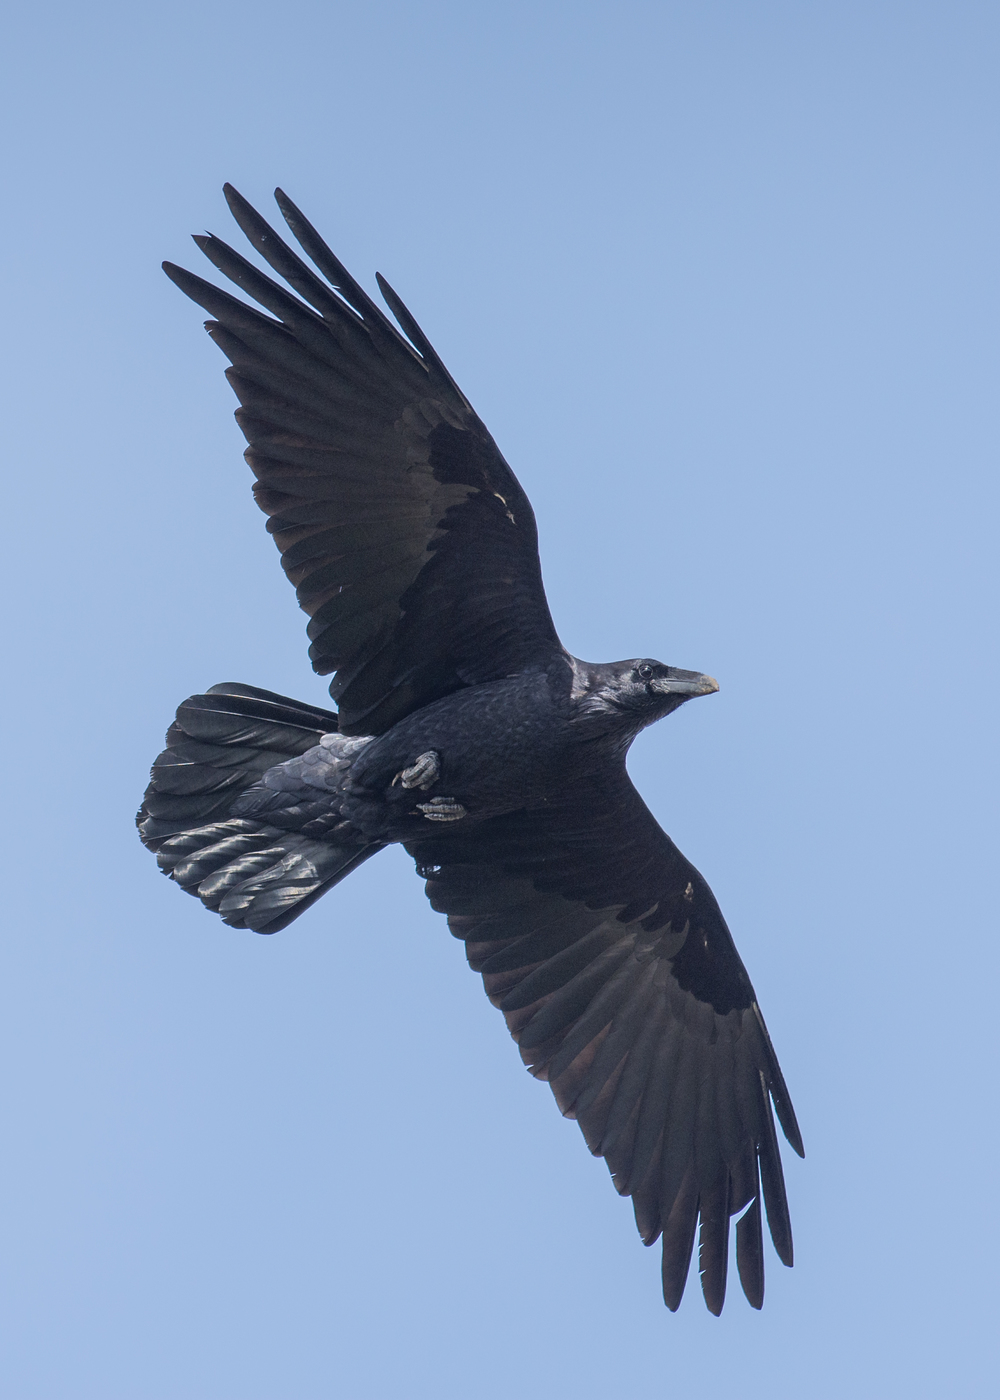 Common Raven (Corvus corax) Settings: 450mm (35mm eqv.), 1/1000s, f/4.5, ISO110, +1/3EV, taken 1-12-16 12:54